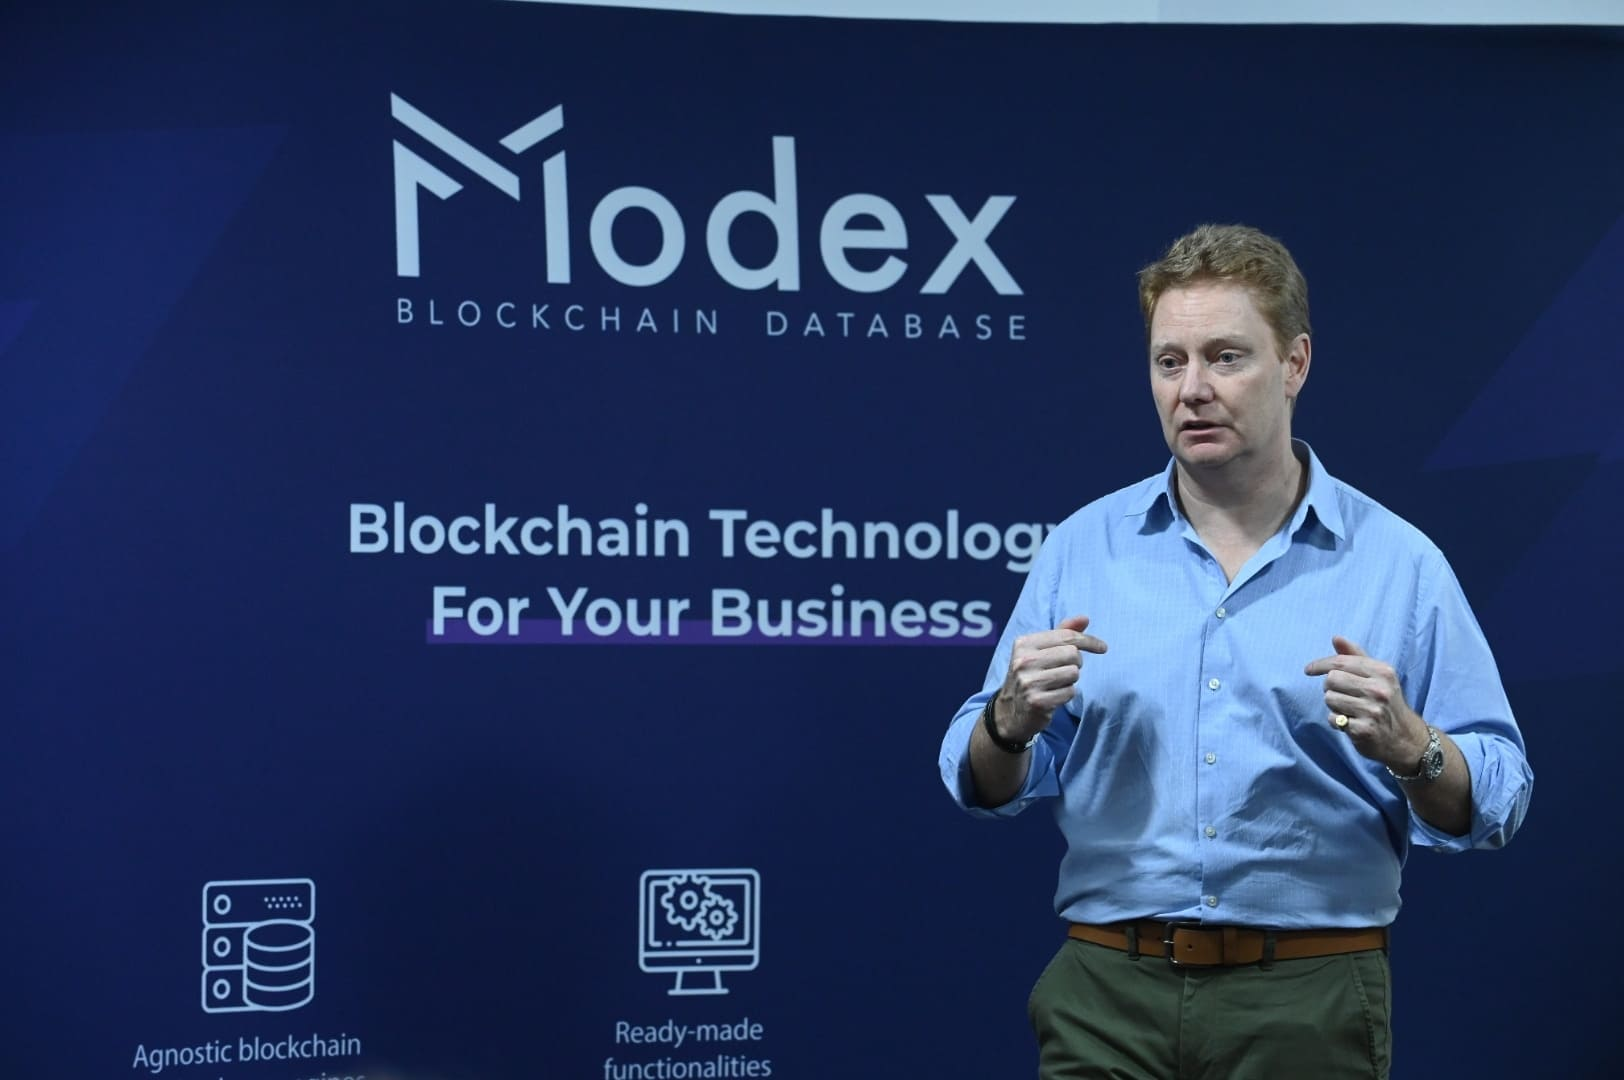 Modex welcomes Andrew Carwardine as a new Board member